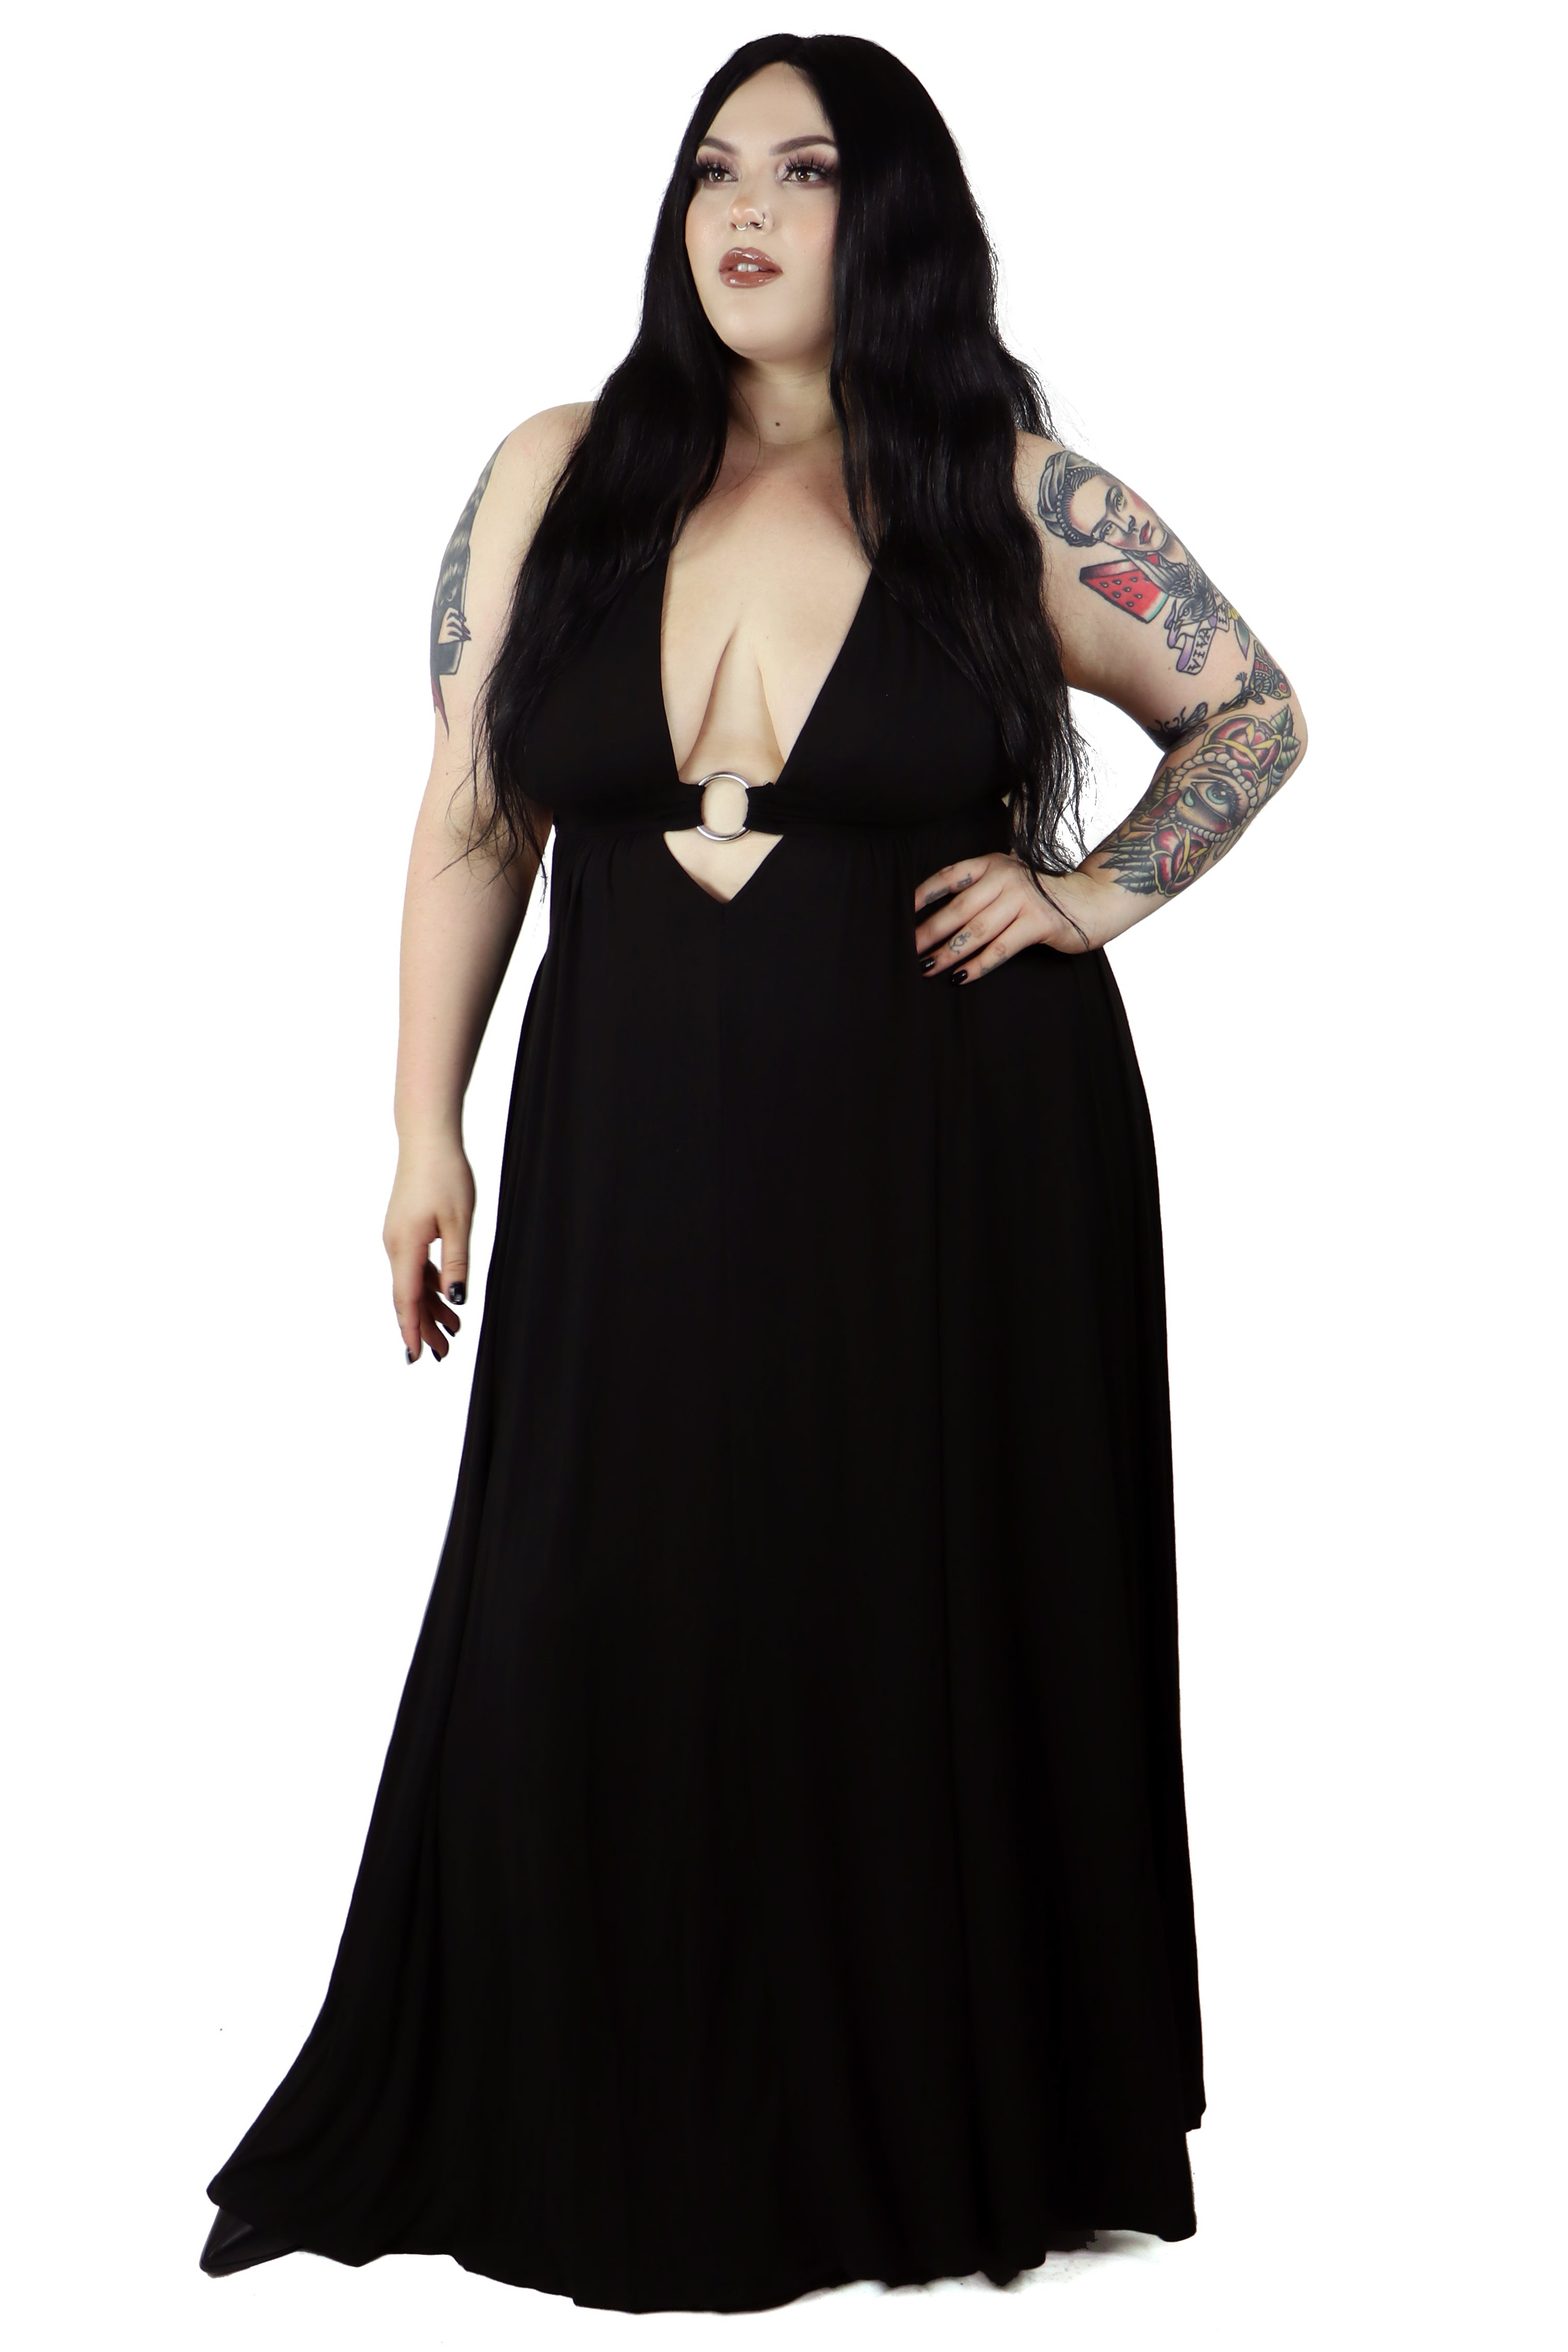 Hot Girl Summer Maxi Dress - Limited Edition